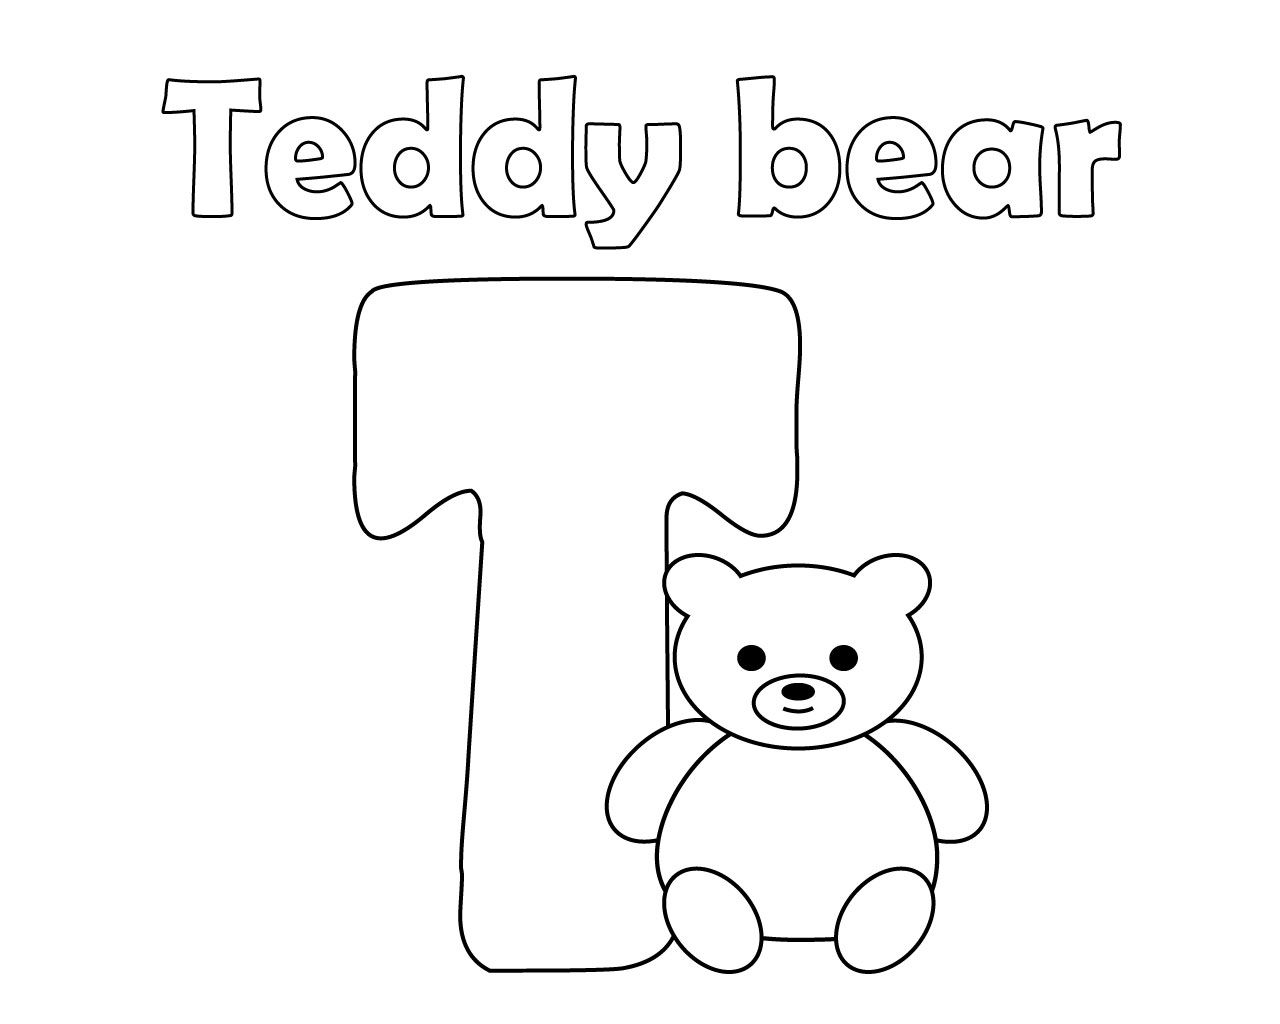 Free Printable Letter T Coloring Page For Kids If You Want To Color Letter T Coloring Pages Then You C Free Printable Letters Coloring Pages Printable Letters